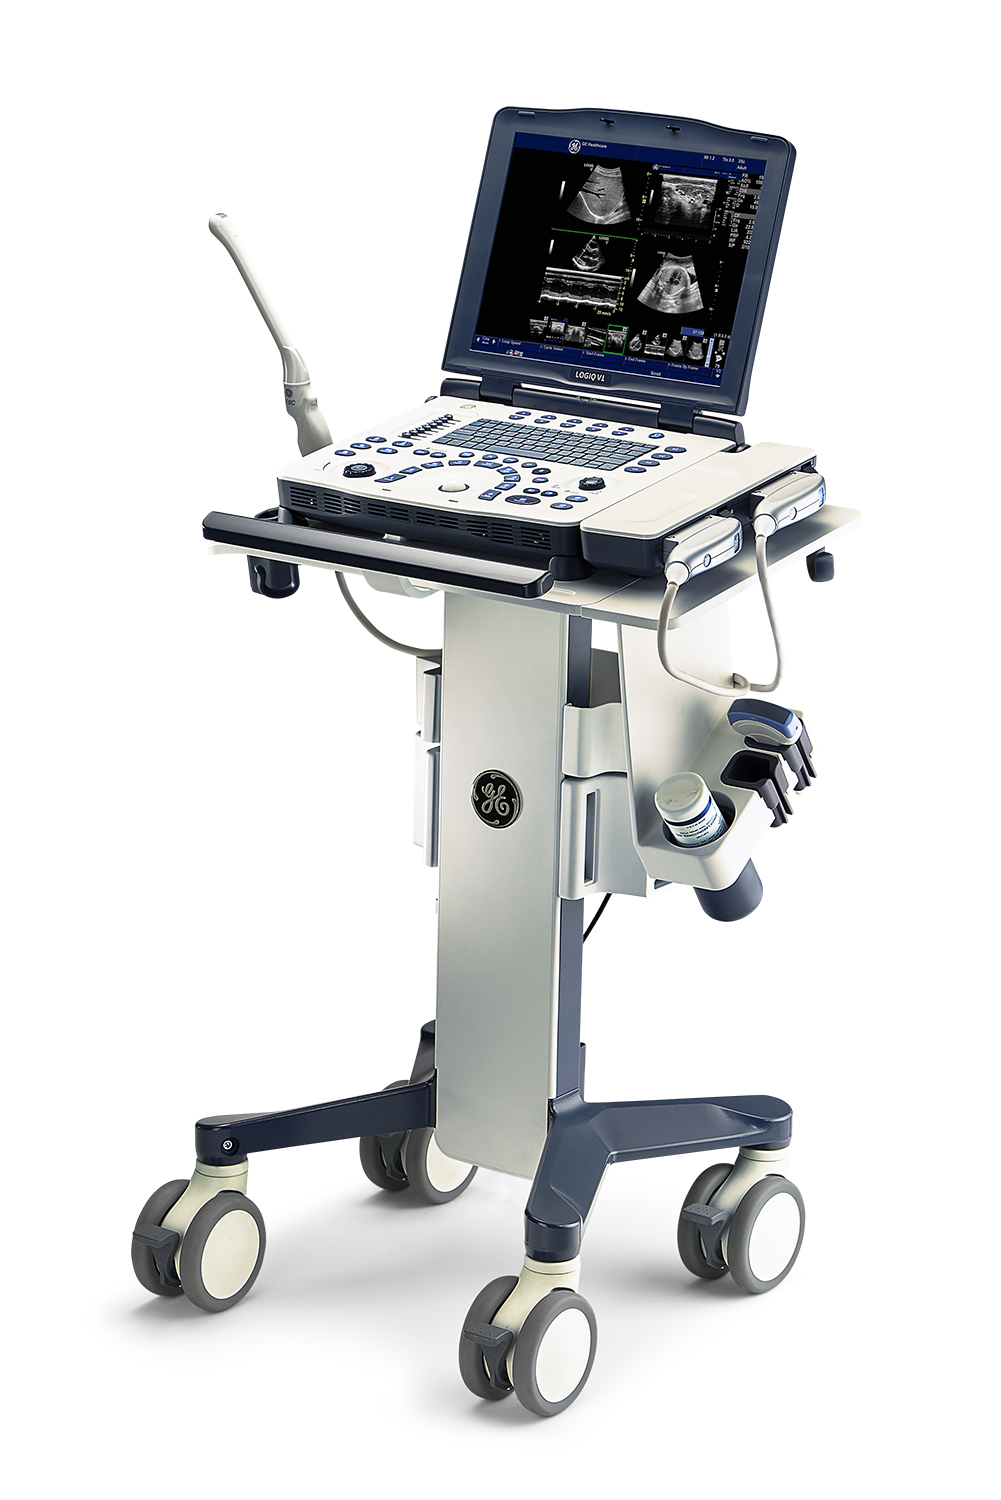 GE LOGIQ V1 ultrasound machine on mobile cart